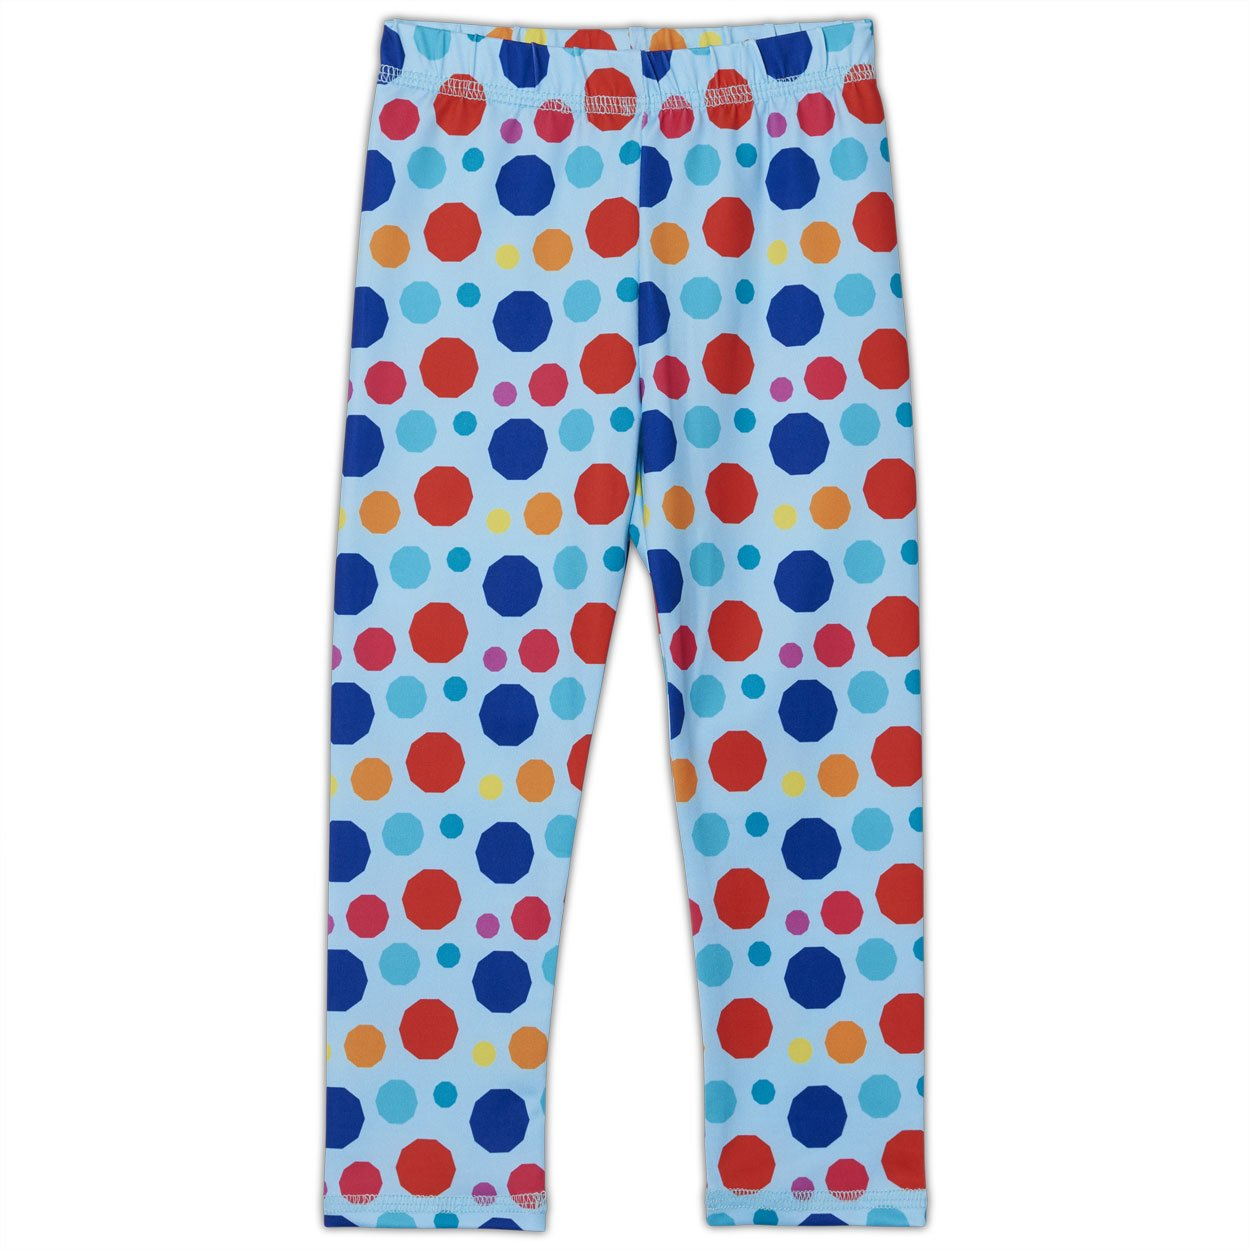 Dots Hybrid Kids Leggings UPF 50+